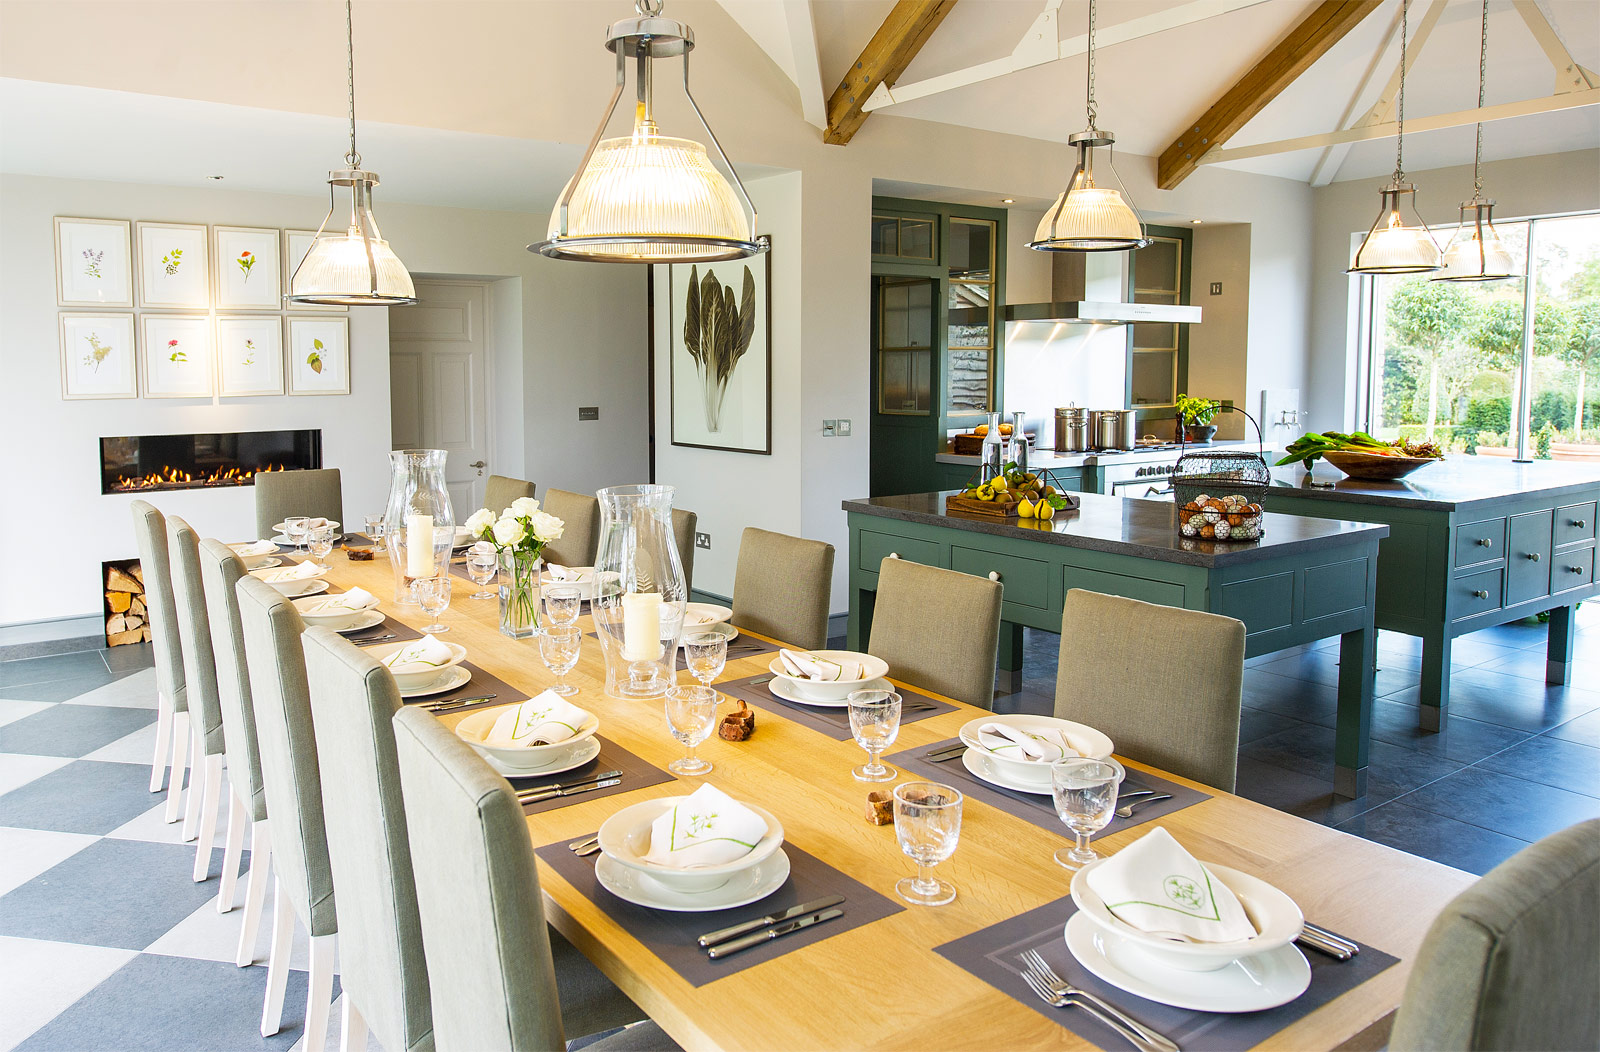 Thyme For A Luxurious Stay In England's Beautiful Cotswolds